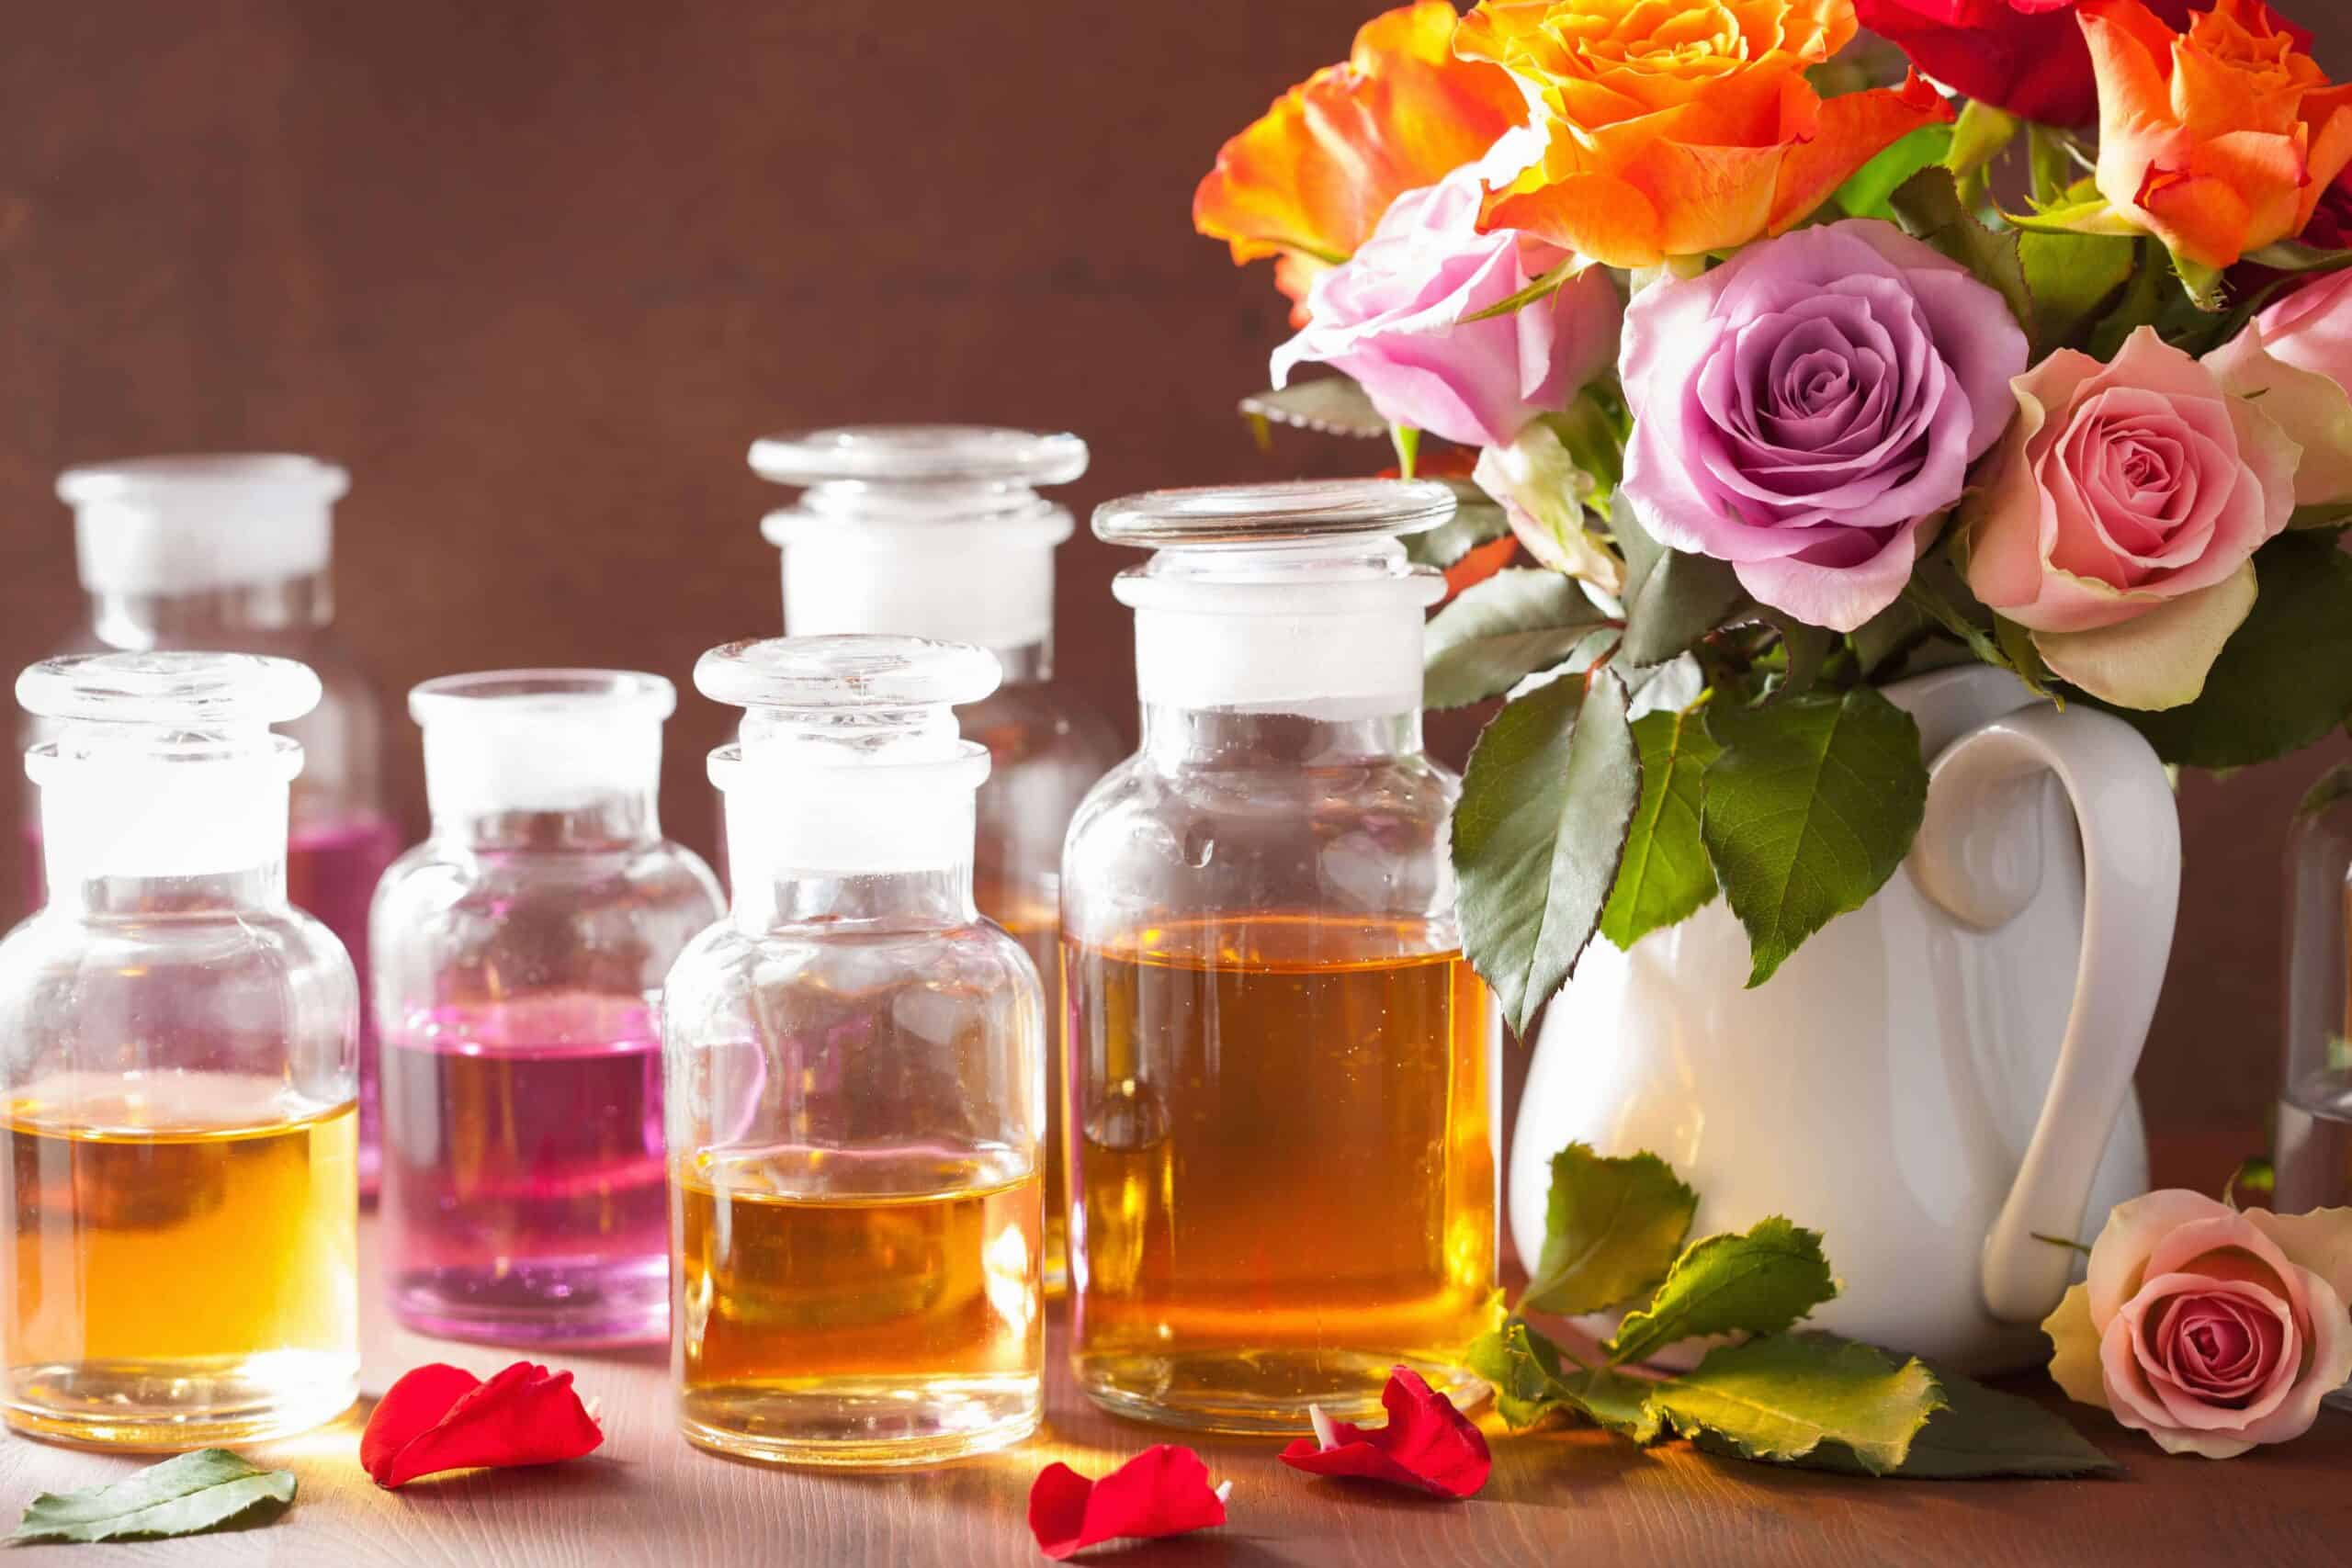 essential-oil-and-rose-flowers-aromatherapy-spa-pe-PDKVHE3-min